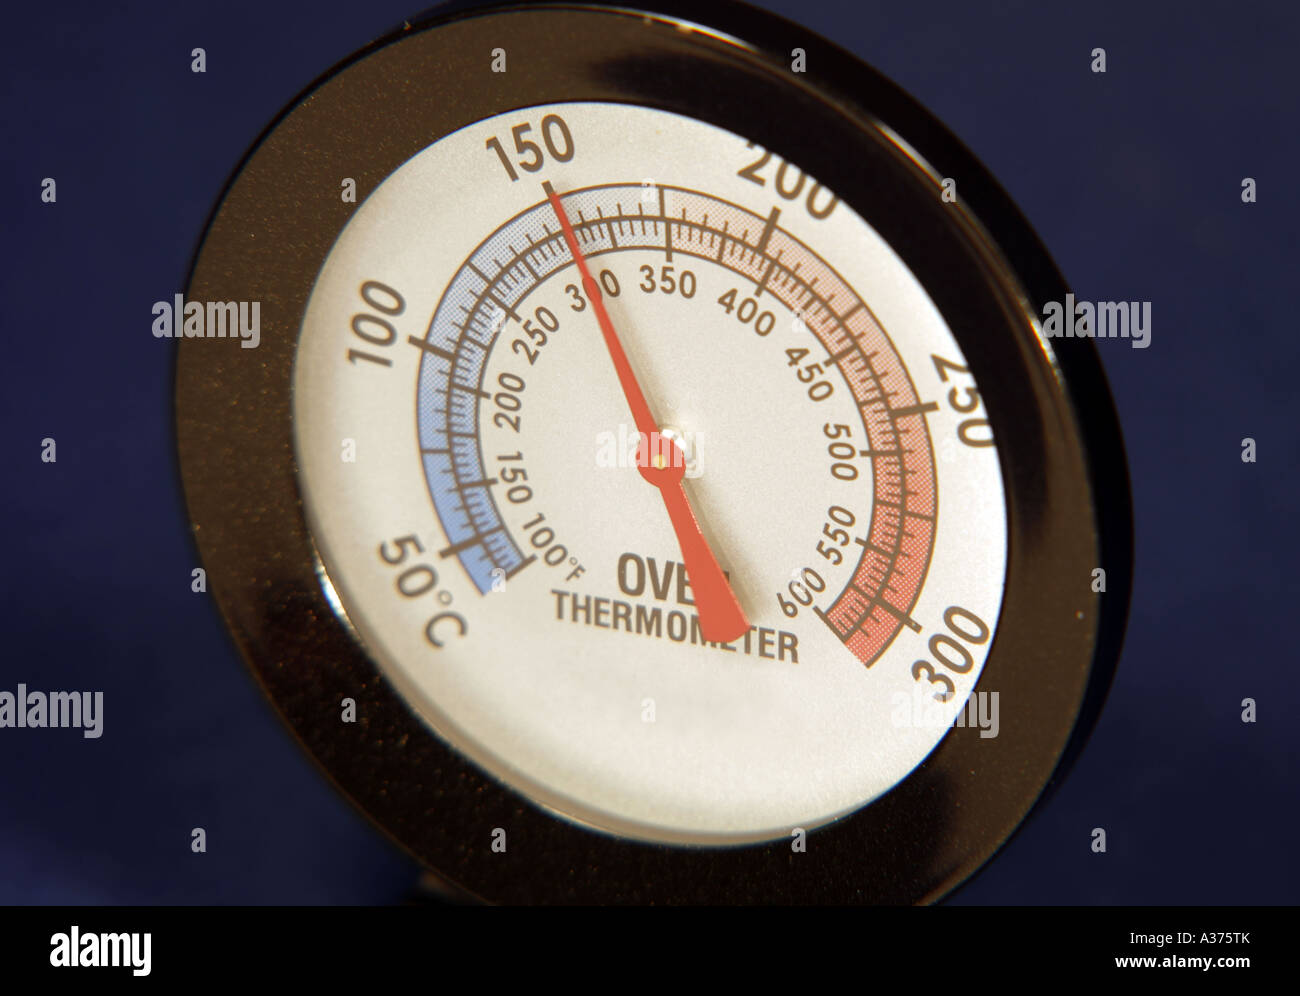 150 Degrees Celsius To Fahrenheit >> Oven Thermometer reading 150 Degrees Centigrade Stock ...